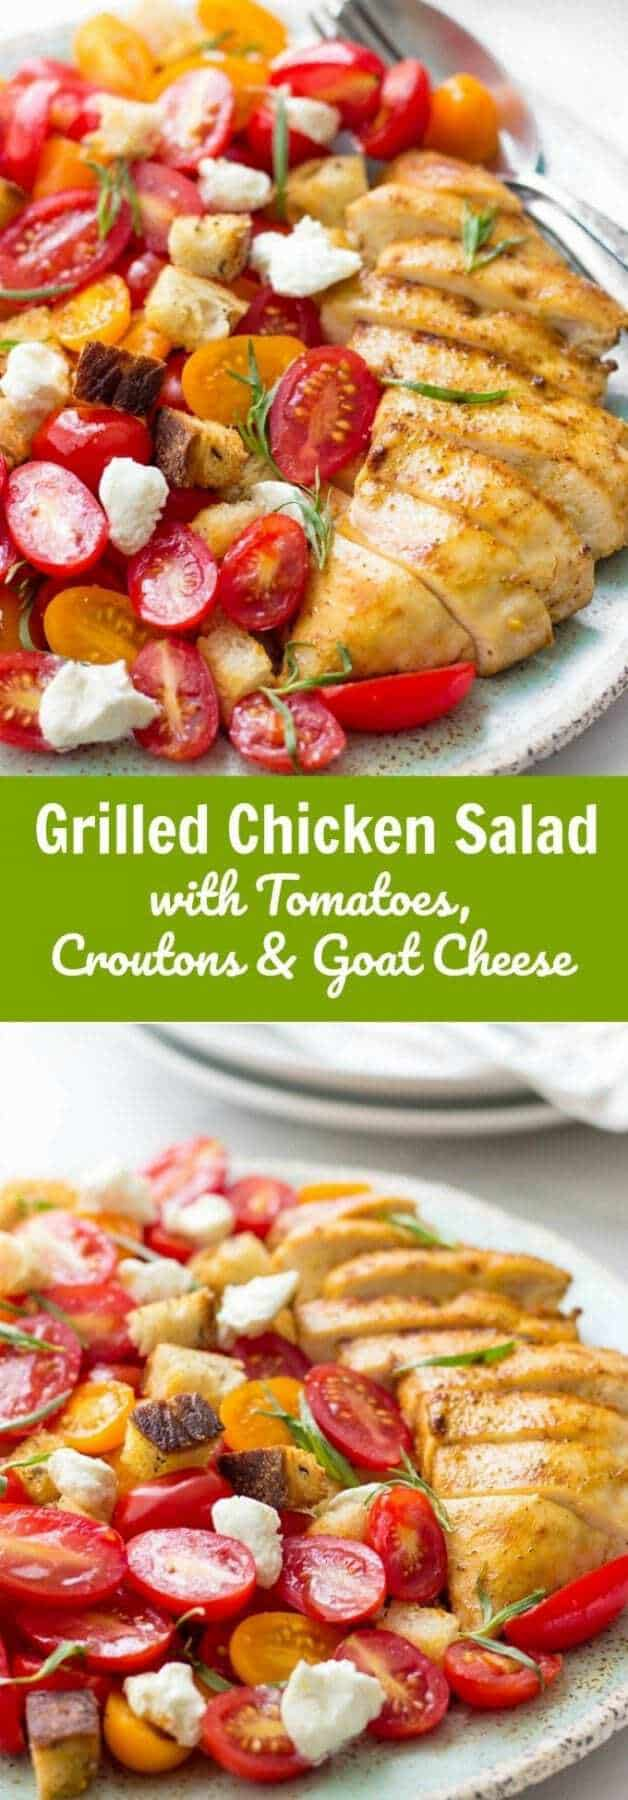 Msg 4 21+ Such an EASY and delicious Grilled Chicken Salad to put together for your favorite summer occasion. It's healthy, refreshing and requires minimal ingredients.